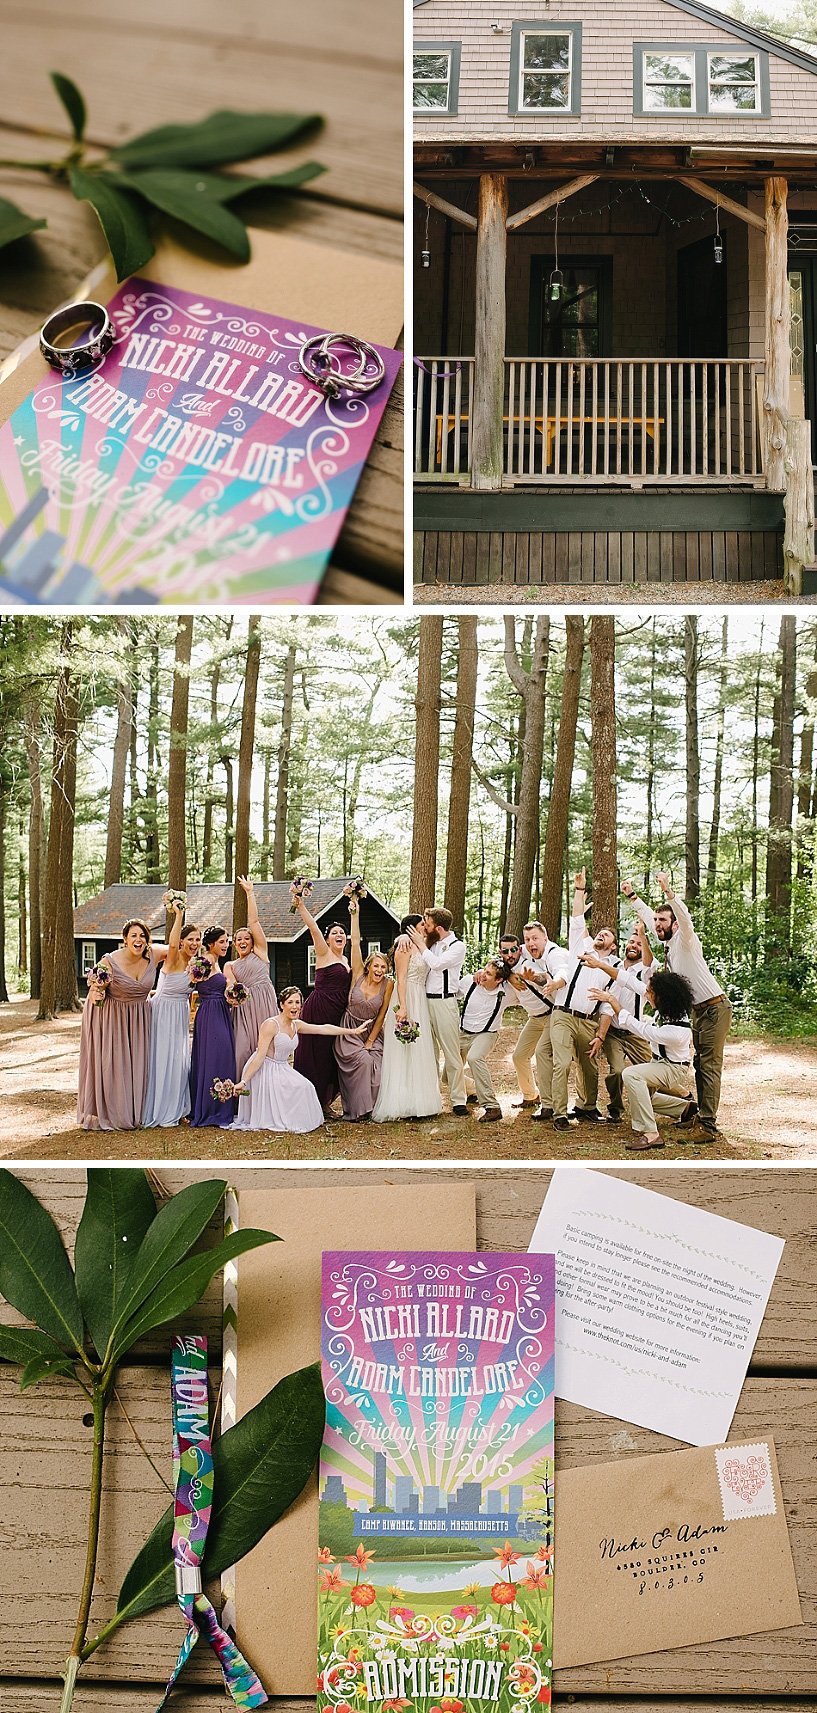 camp kiwanee music festival wedding